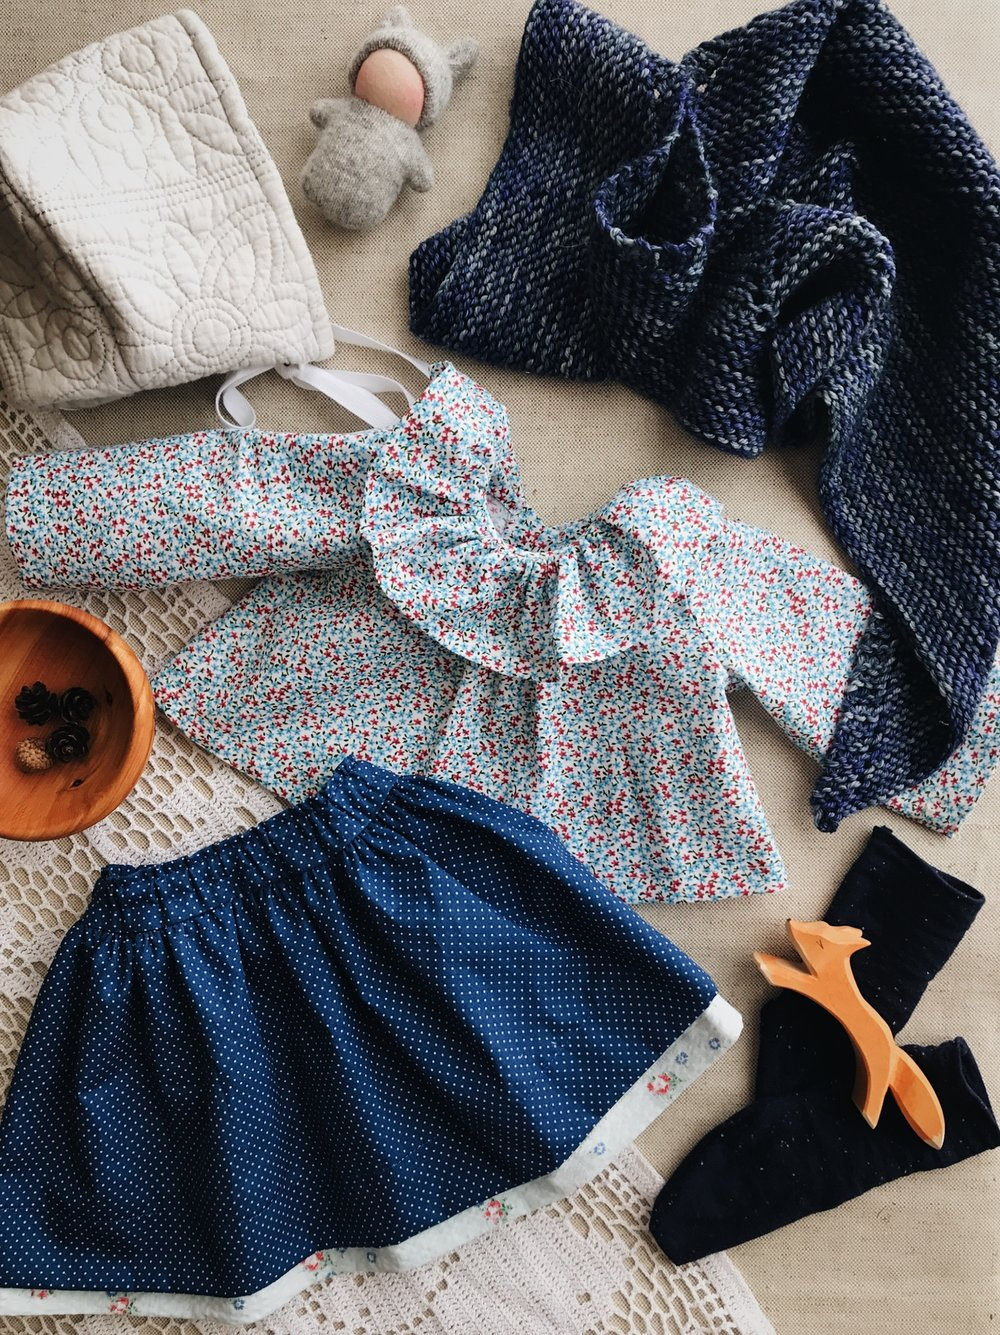 Thora's clothing, minus her shoes. Thora is a sweet doll that will become available for sale this weekend. via Fig and Me. #dollclothing #sewingdollclothes #madelinetosh